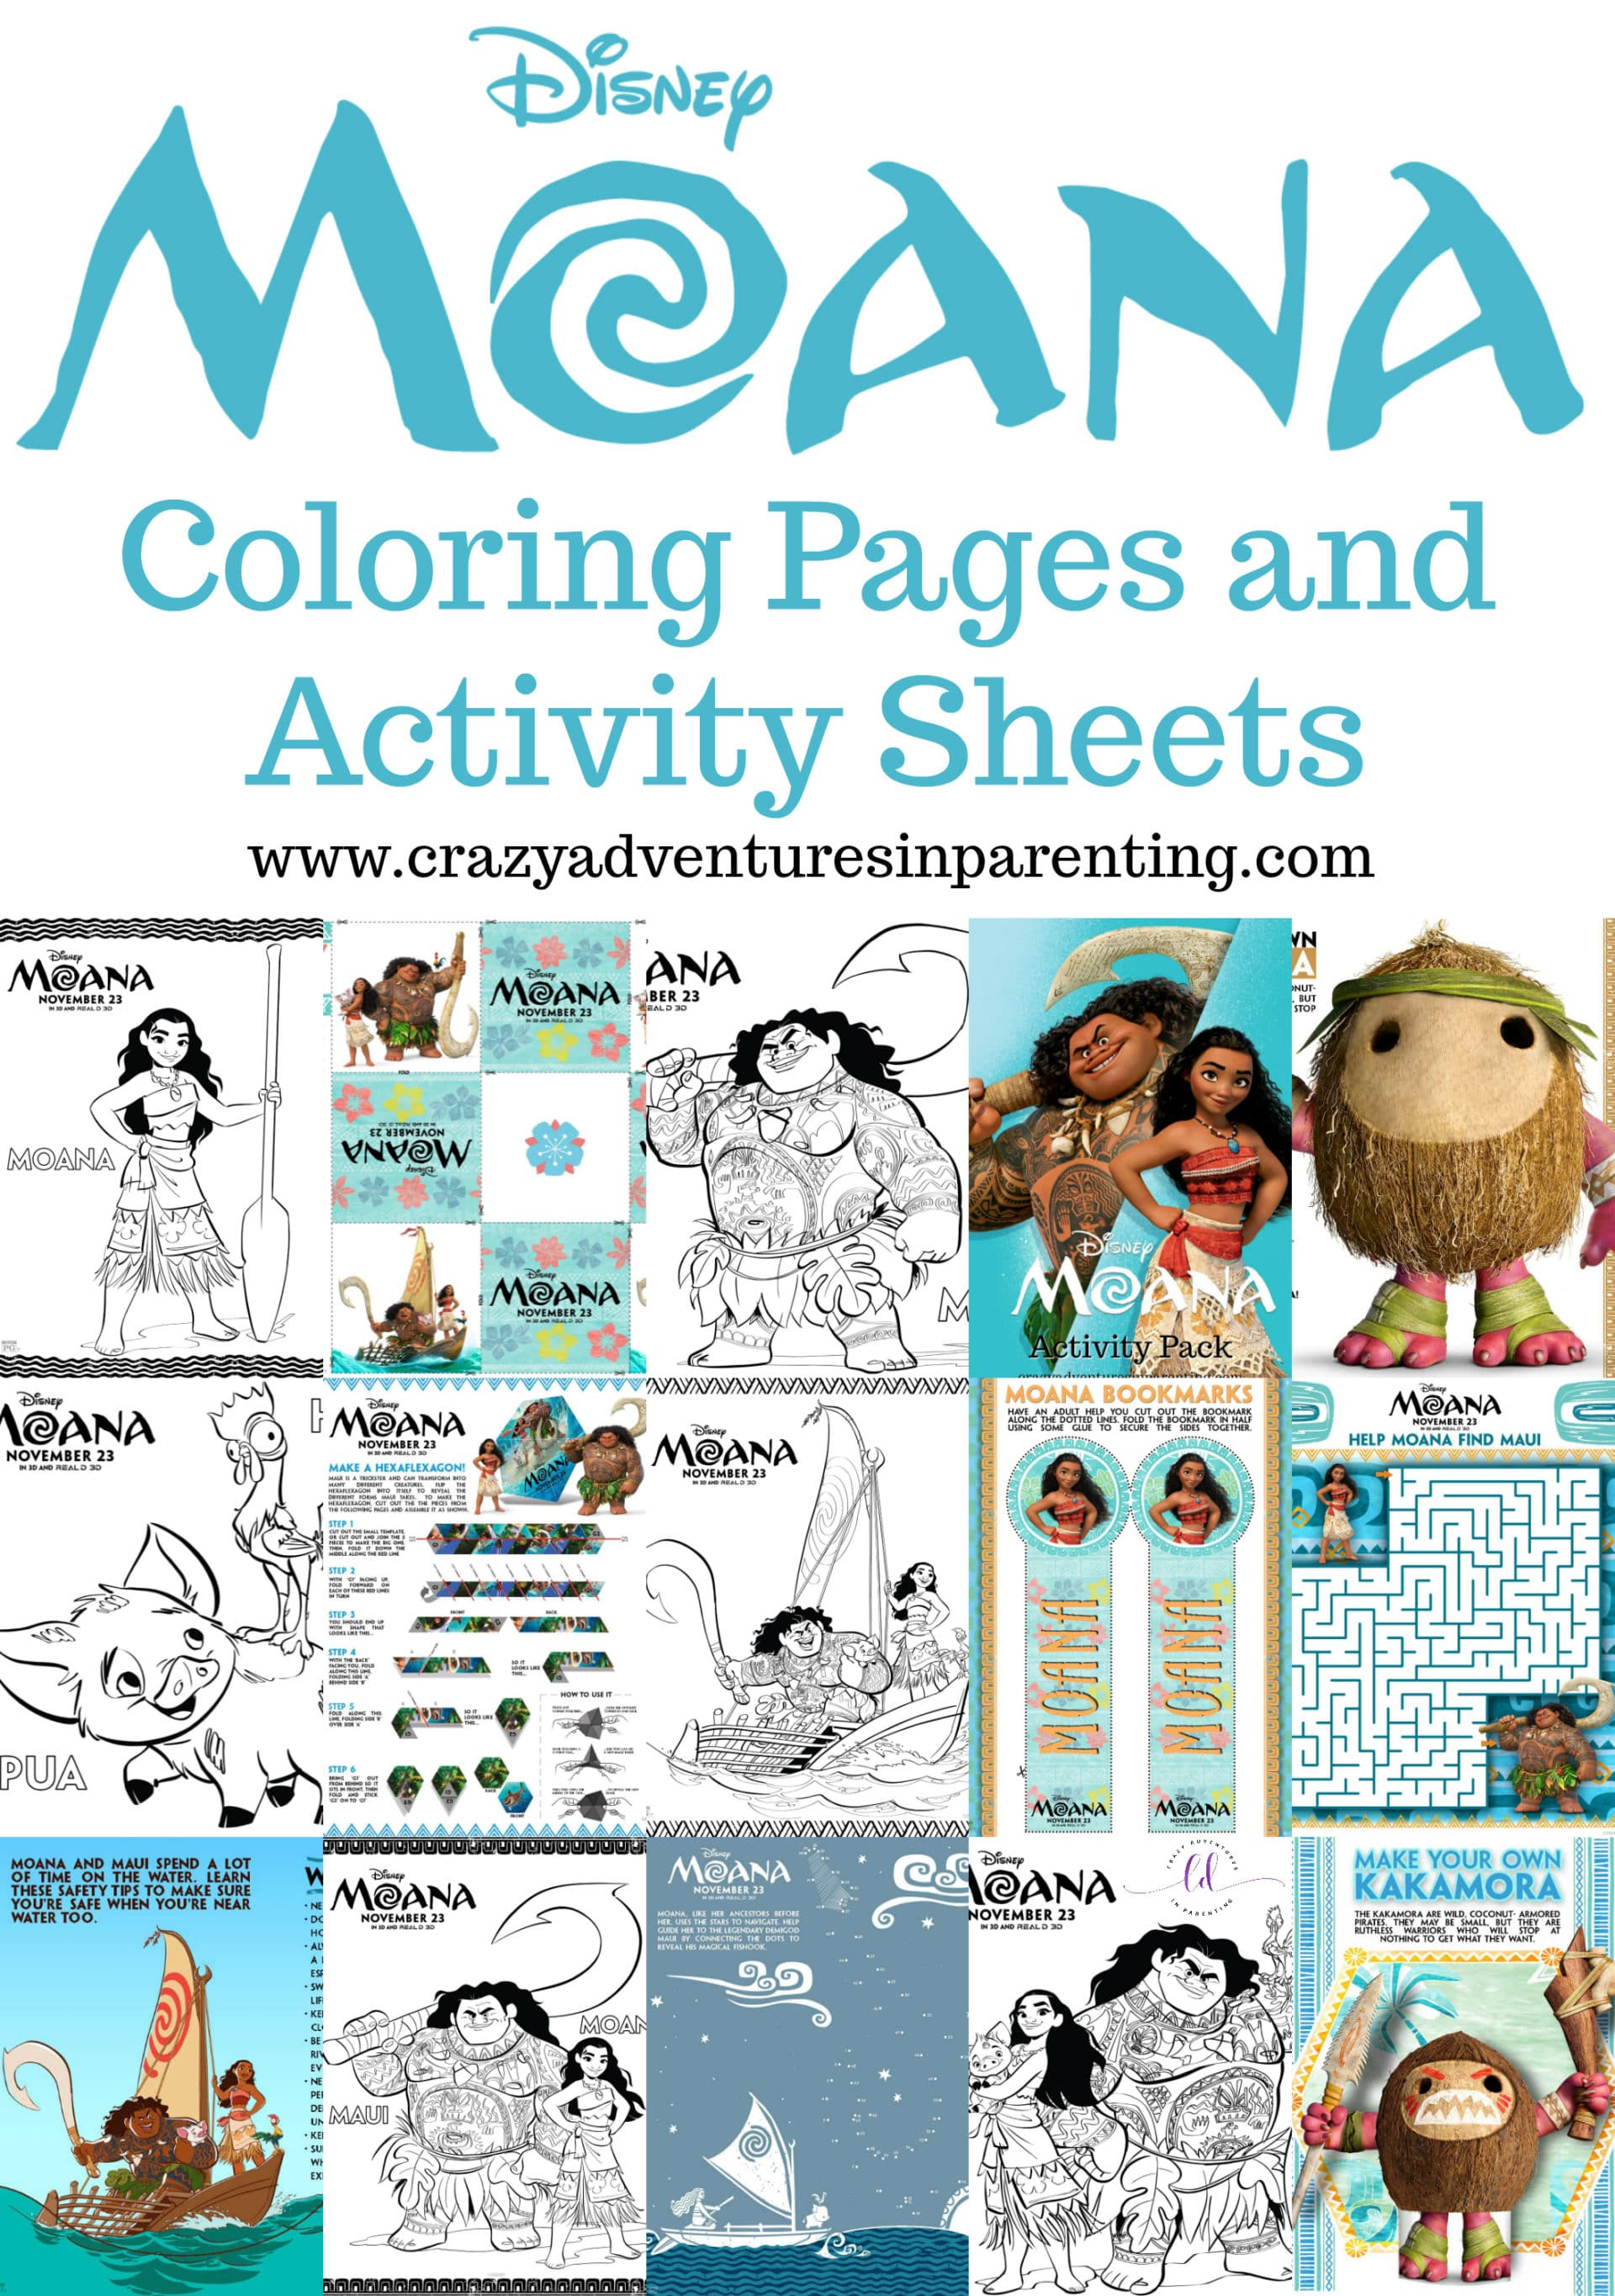 Moana Coloring Pages And Activity Sheets Crazy Adventures In Parenting